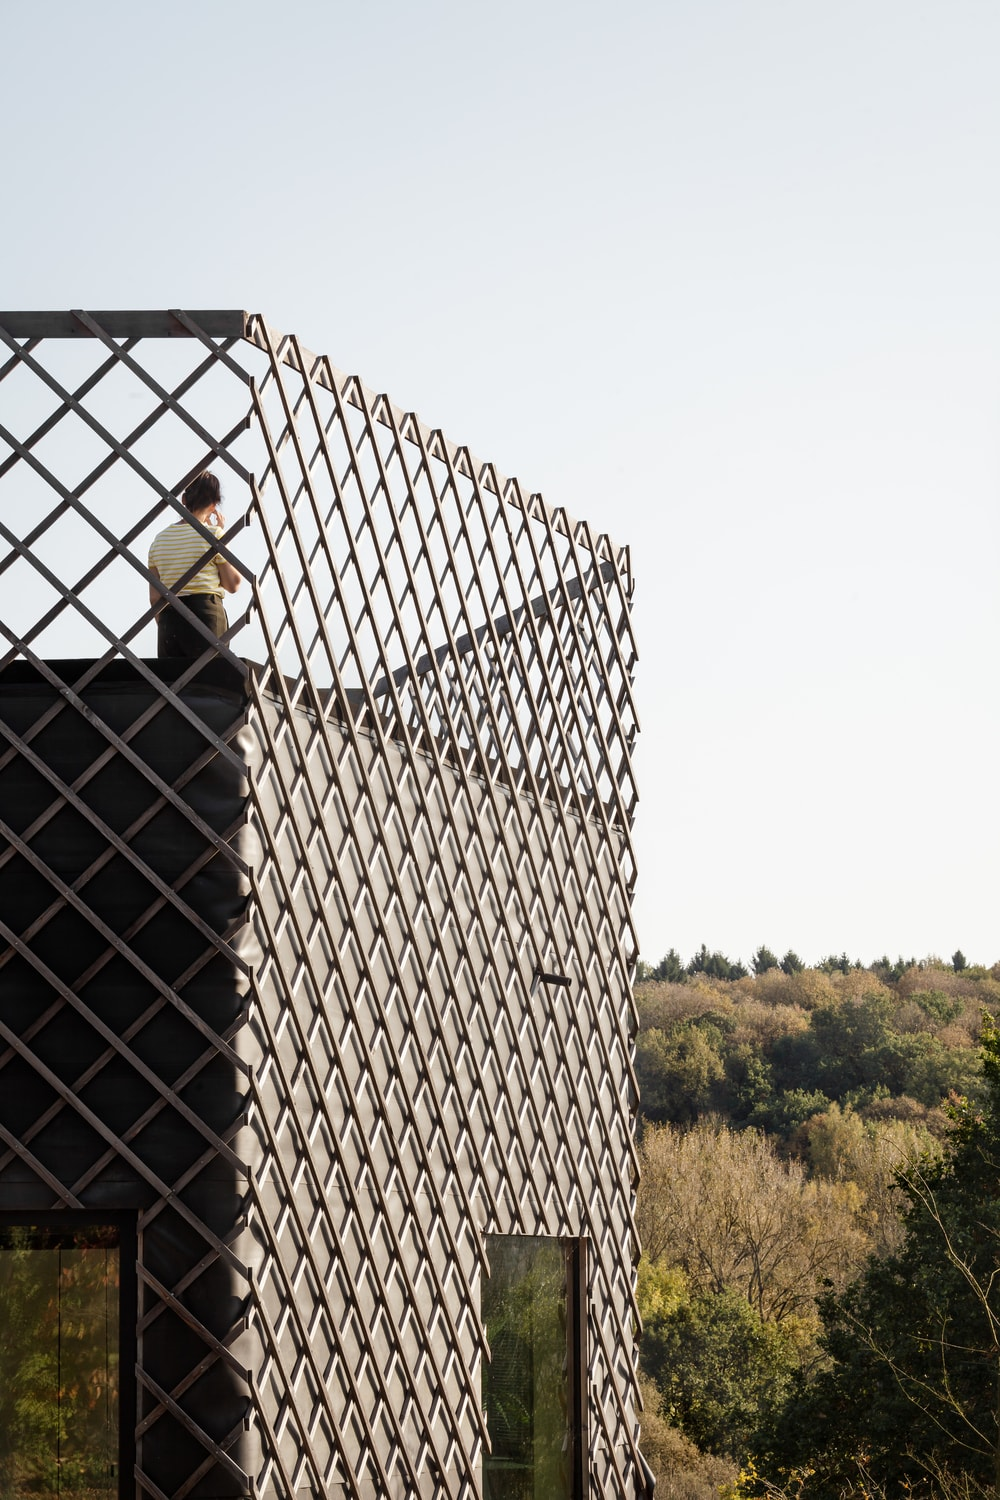 This is a closer look at the balcony at the top of the house where the metallic patterned panels of the exterior extend to serve as railings.